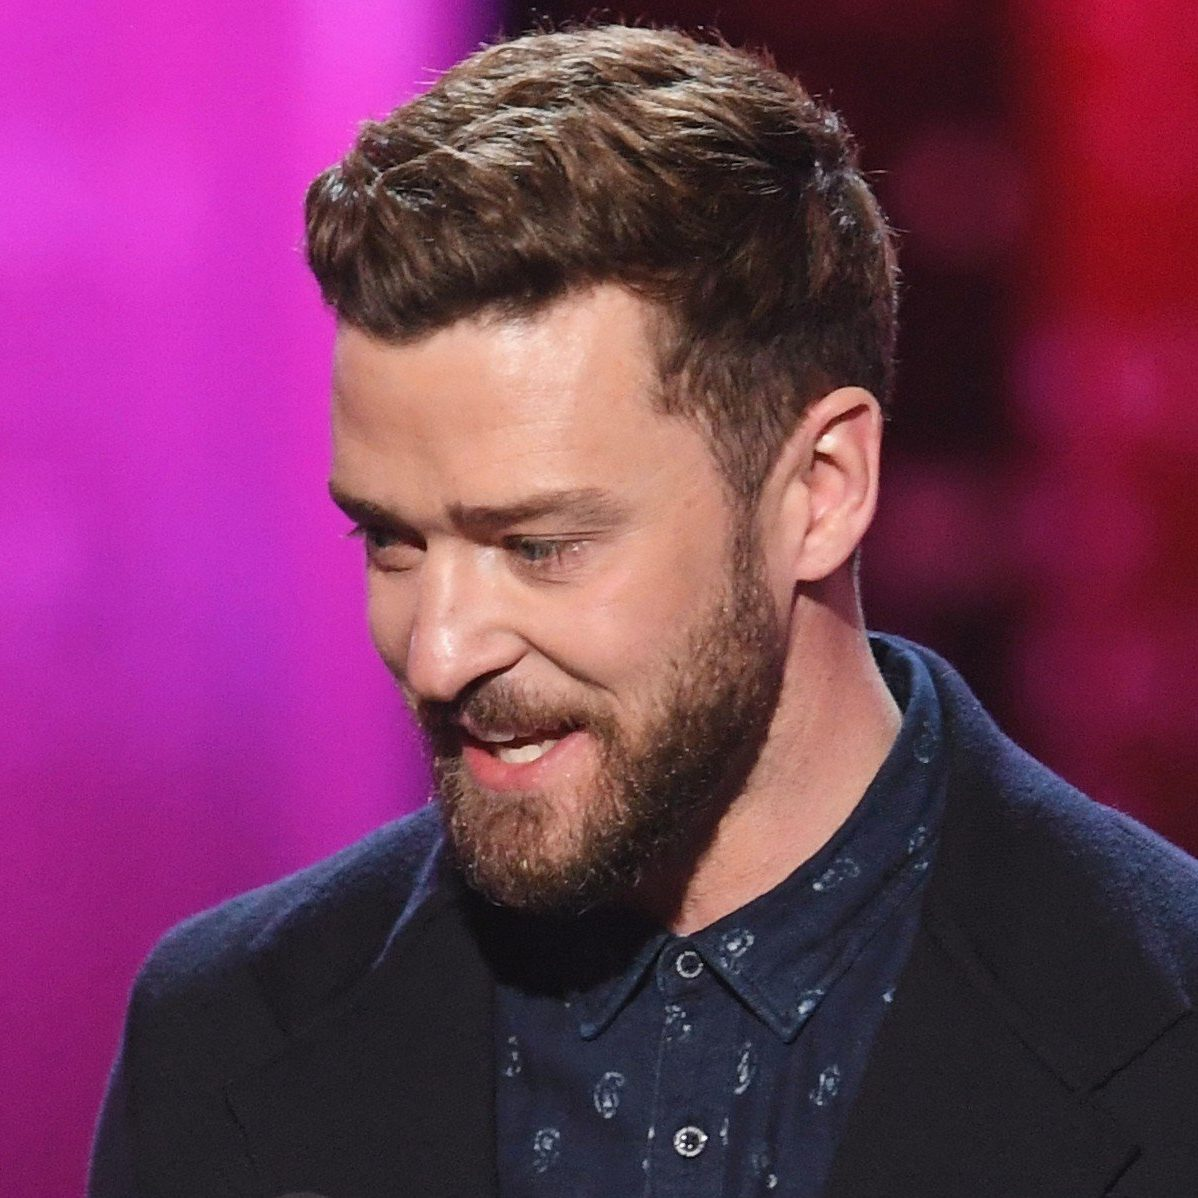 At The 2017 Peopleu0027s Choice Awards, JT Rocks A Traditional Menu0027s Hairstyle  With Just Enough Length On Top To Show Some Of That Natural Texture.